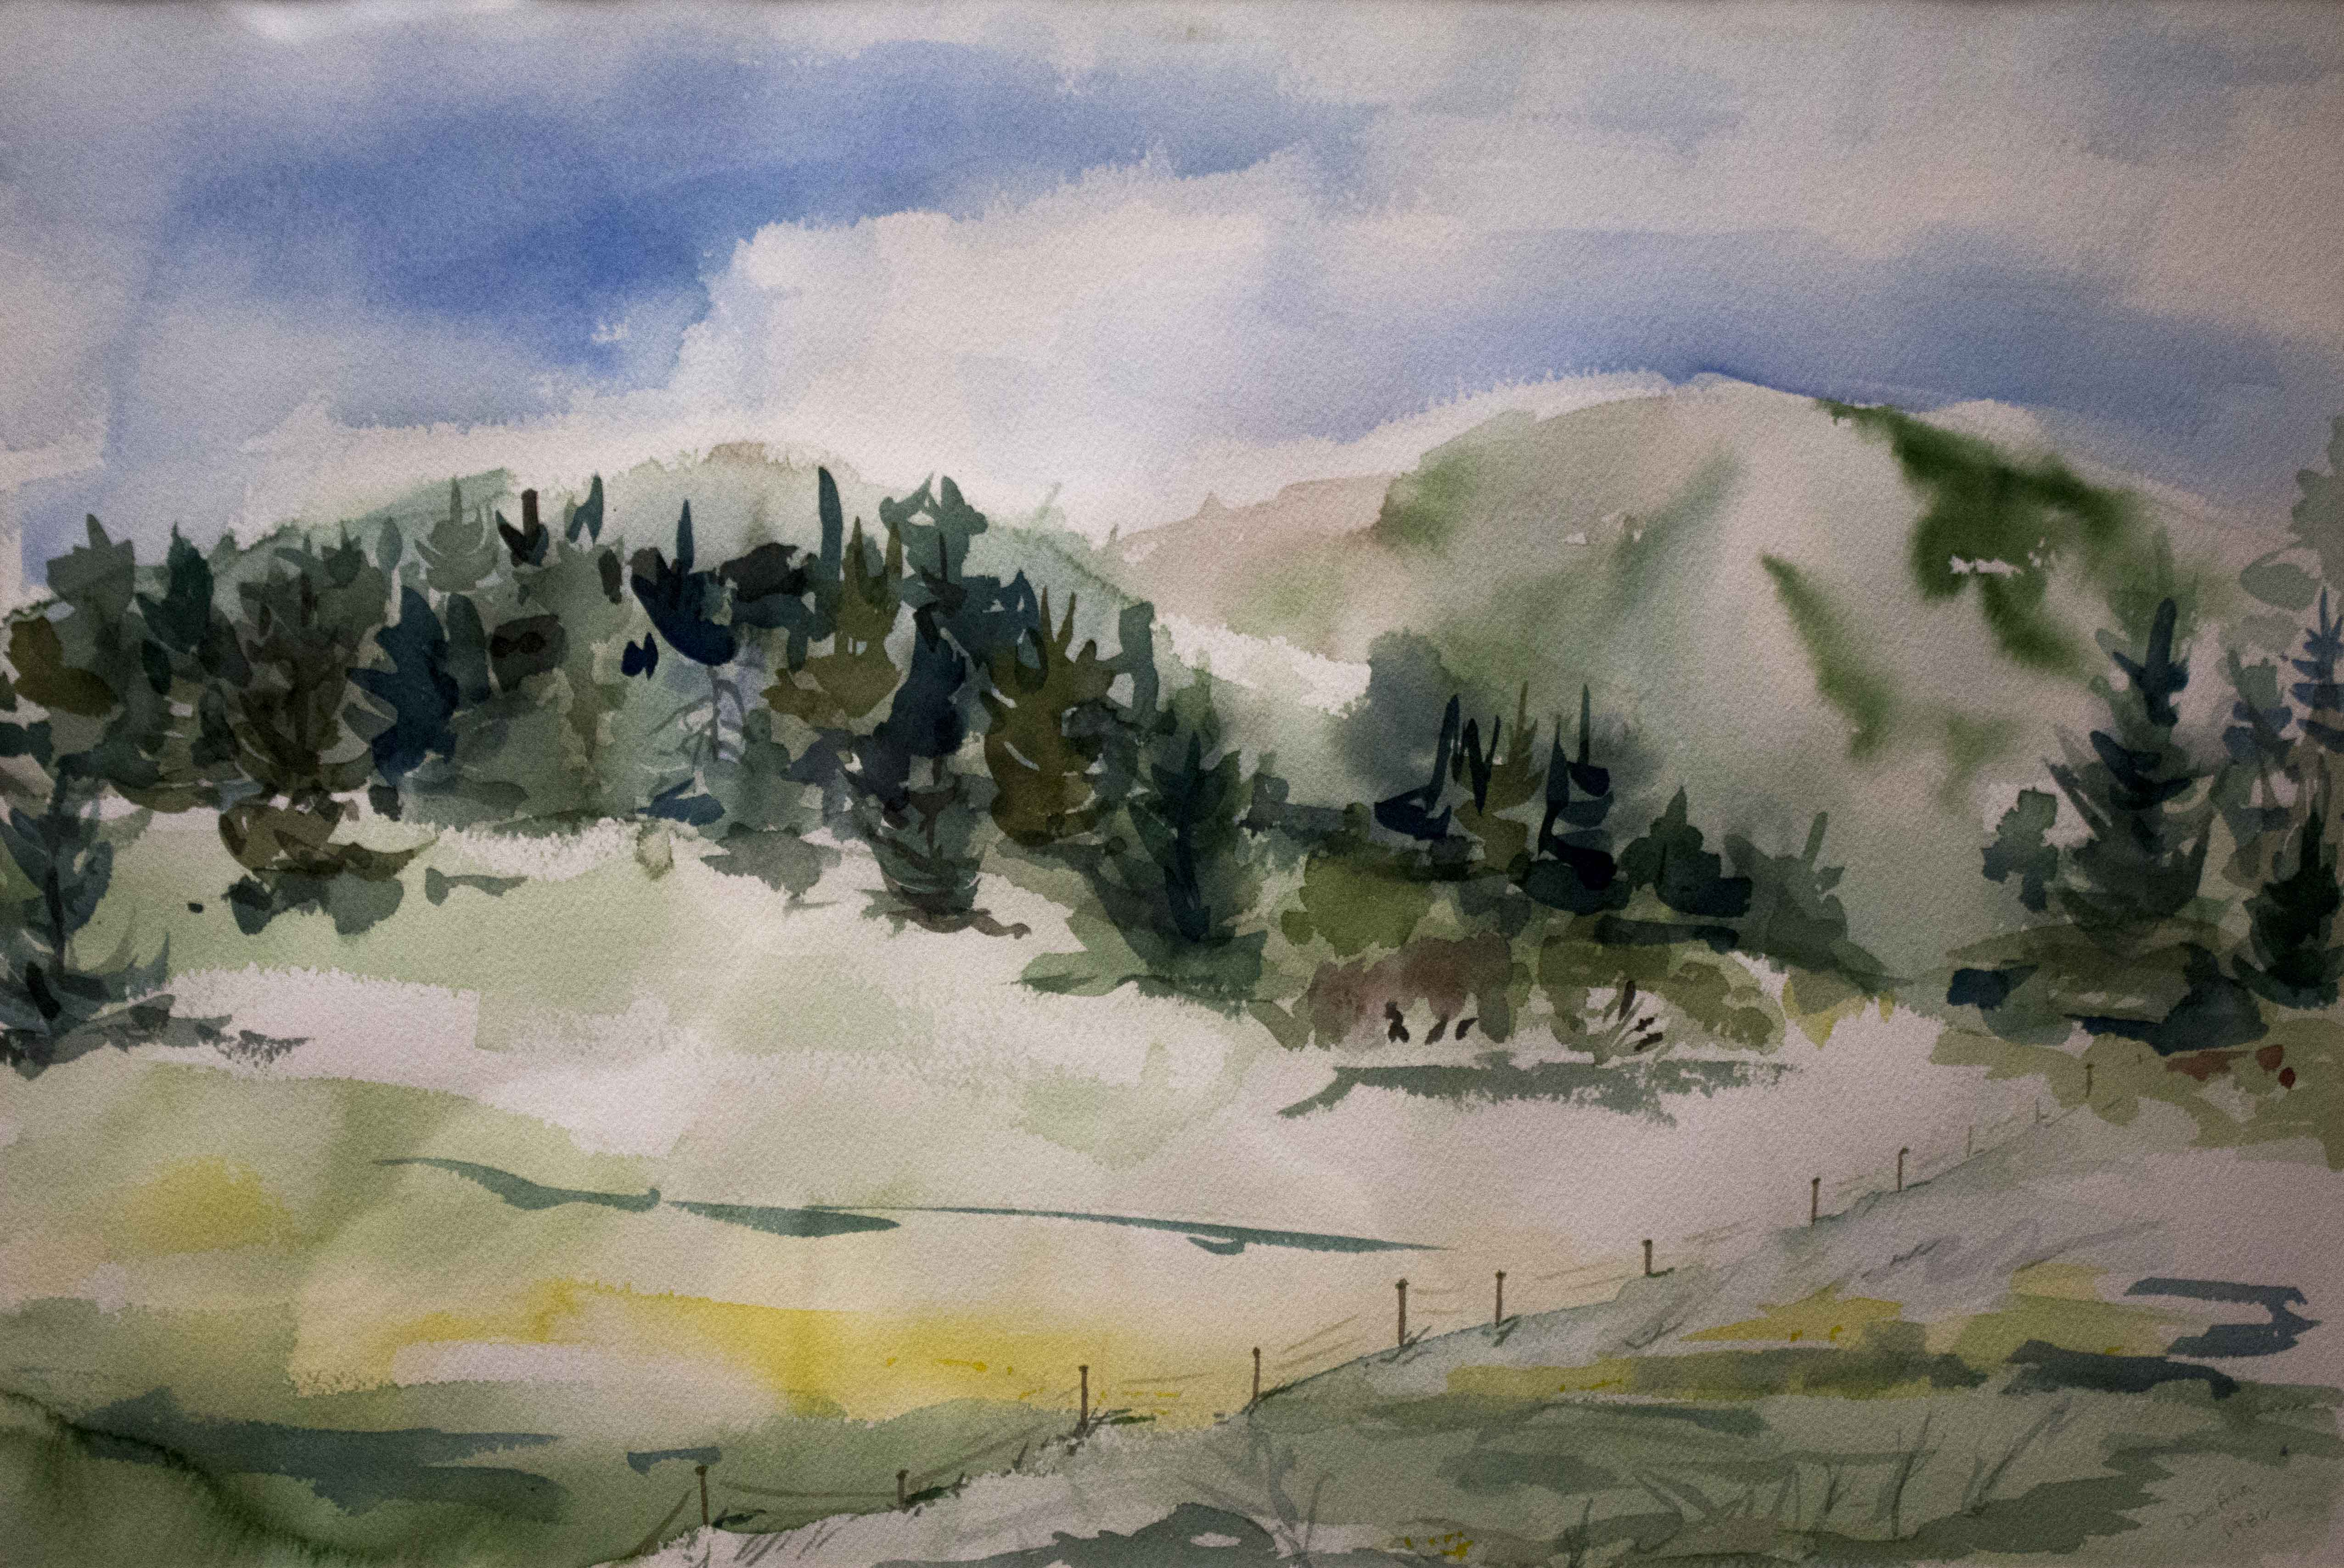 watercolor landscape of a distant treeline and mountain